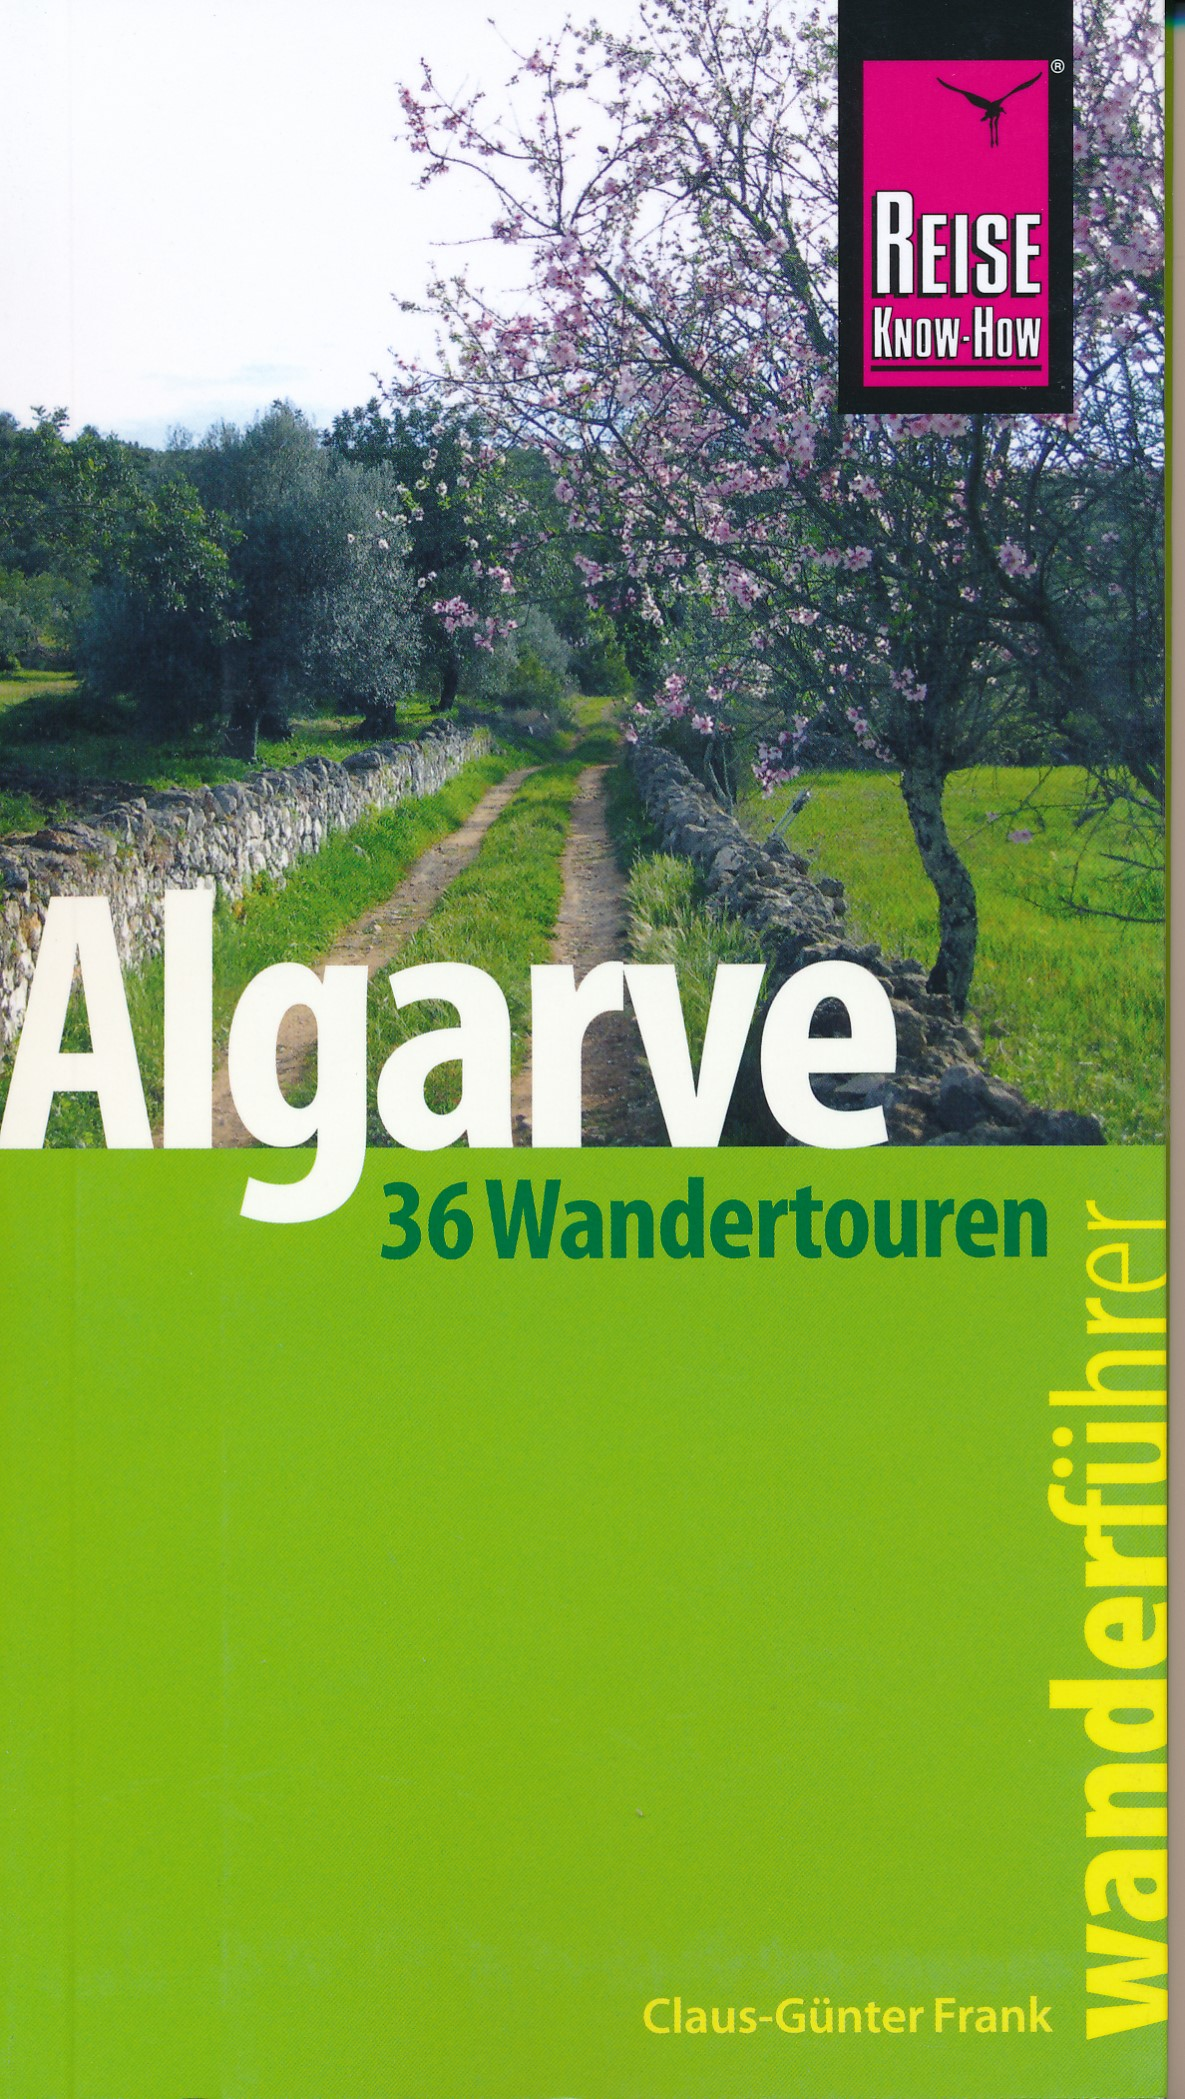 Wandelgids Algarve | Reise Know-How Verlag